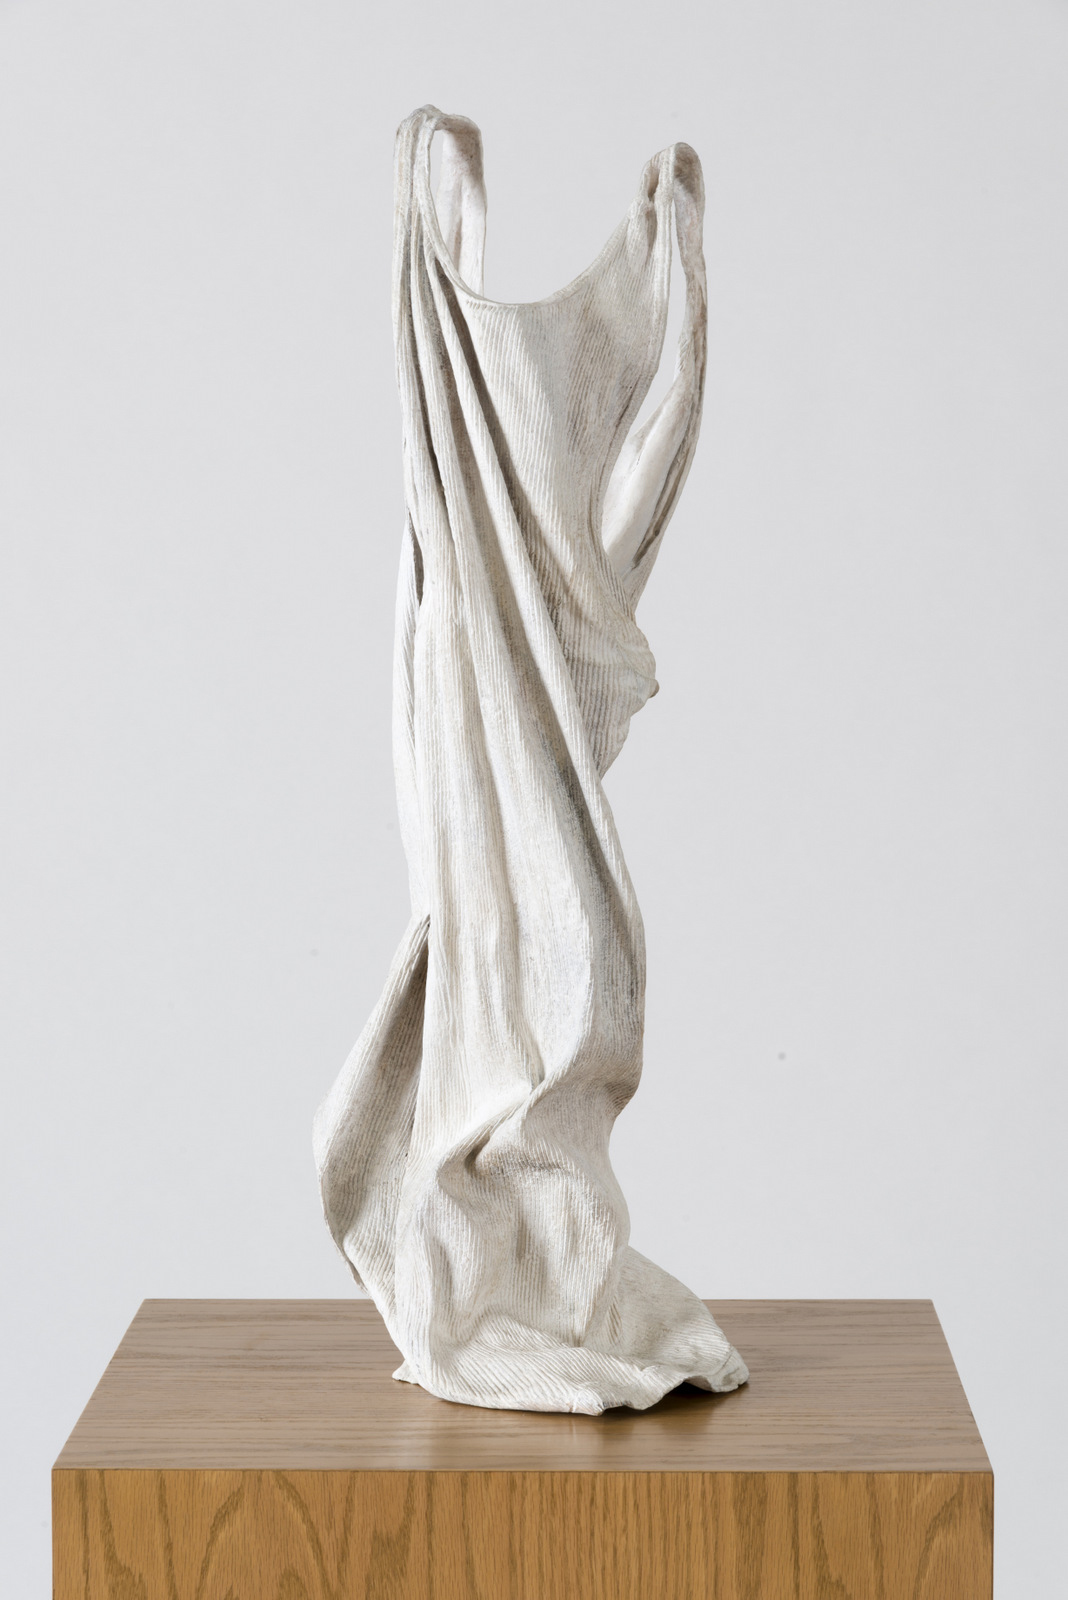 Wifebeater, 2012